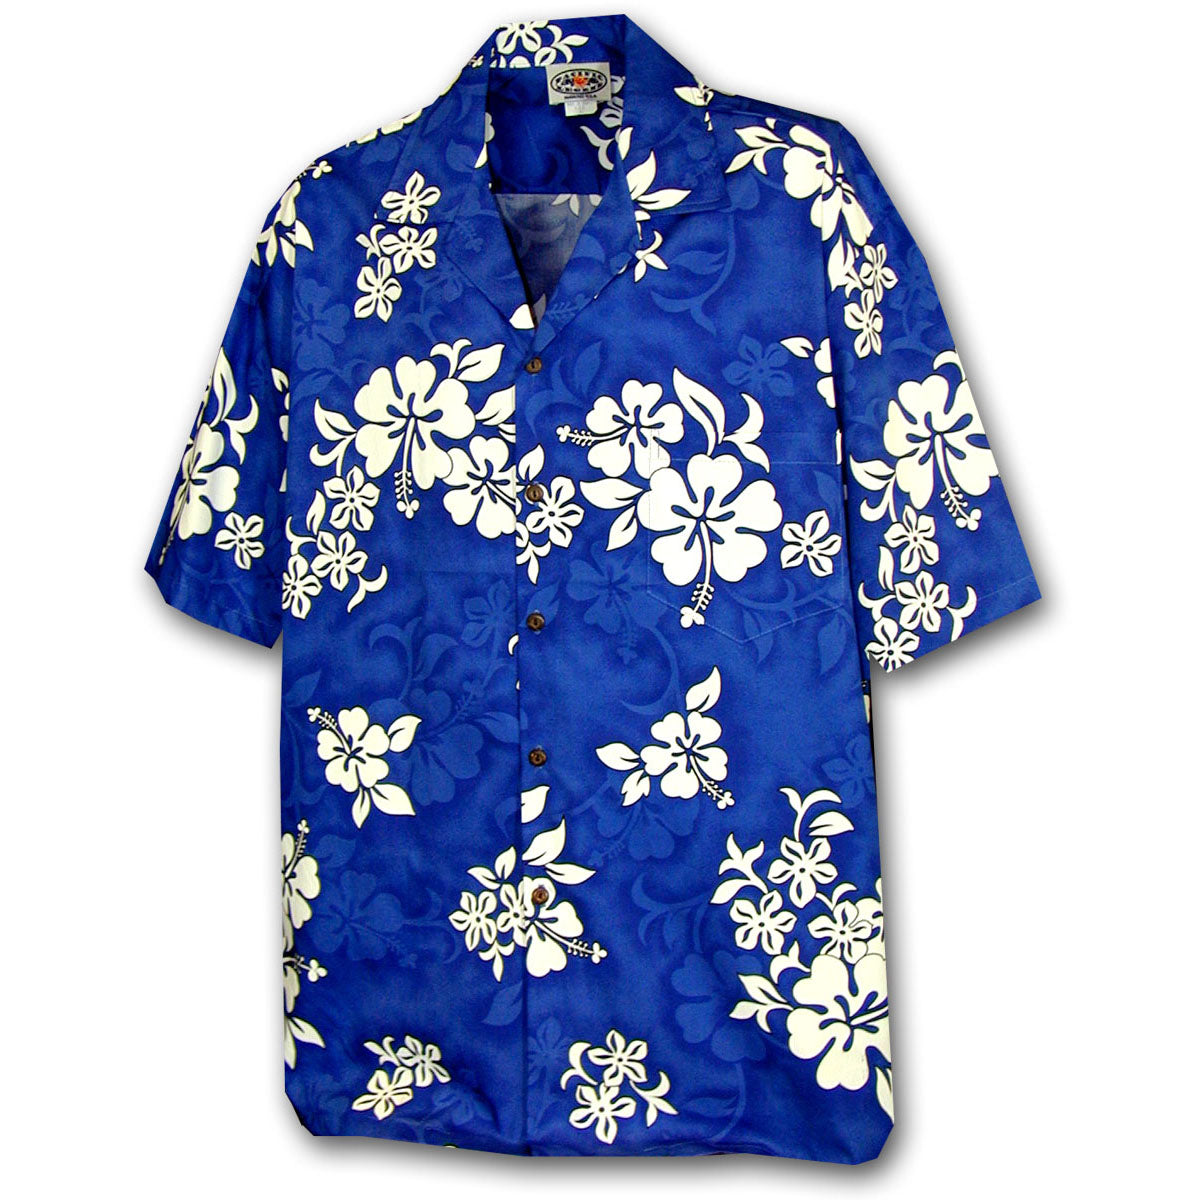 Bright Flower Blue Hawaiian Shirt